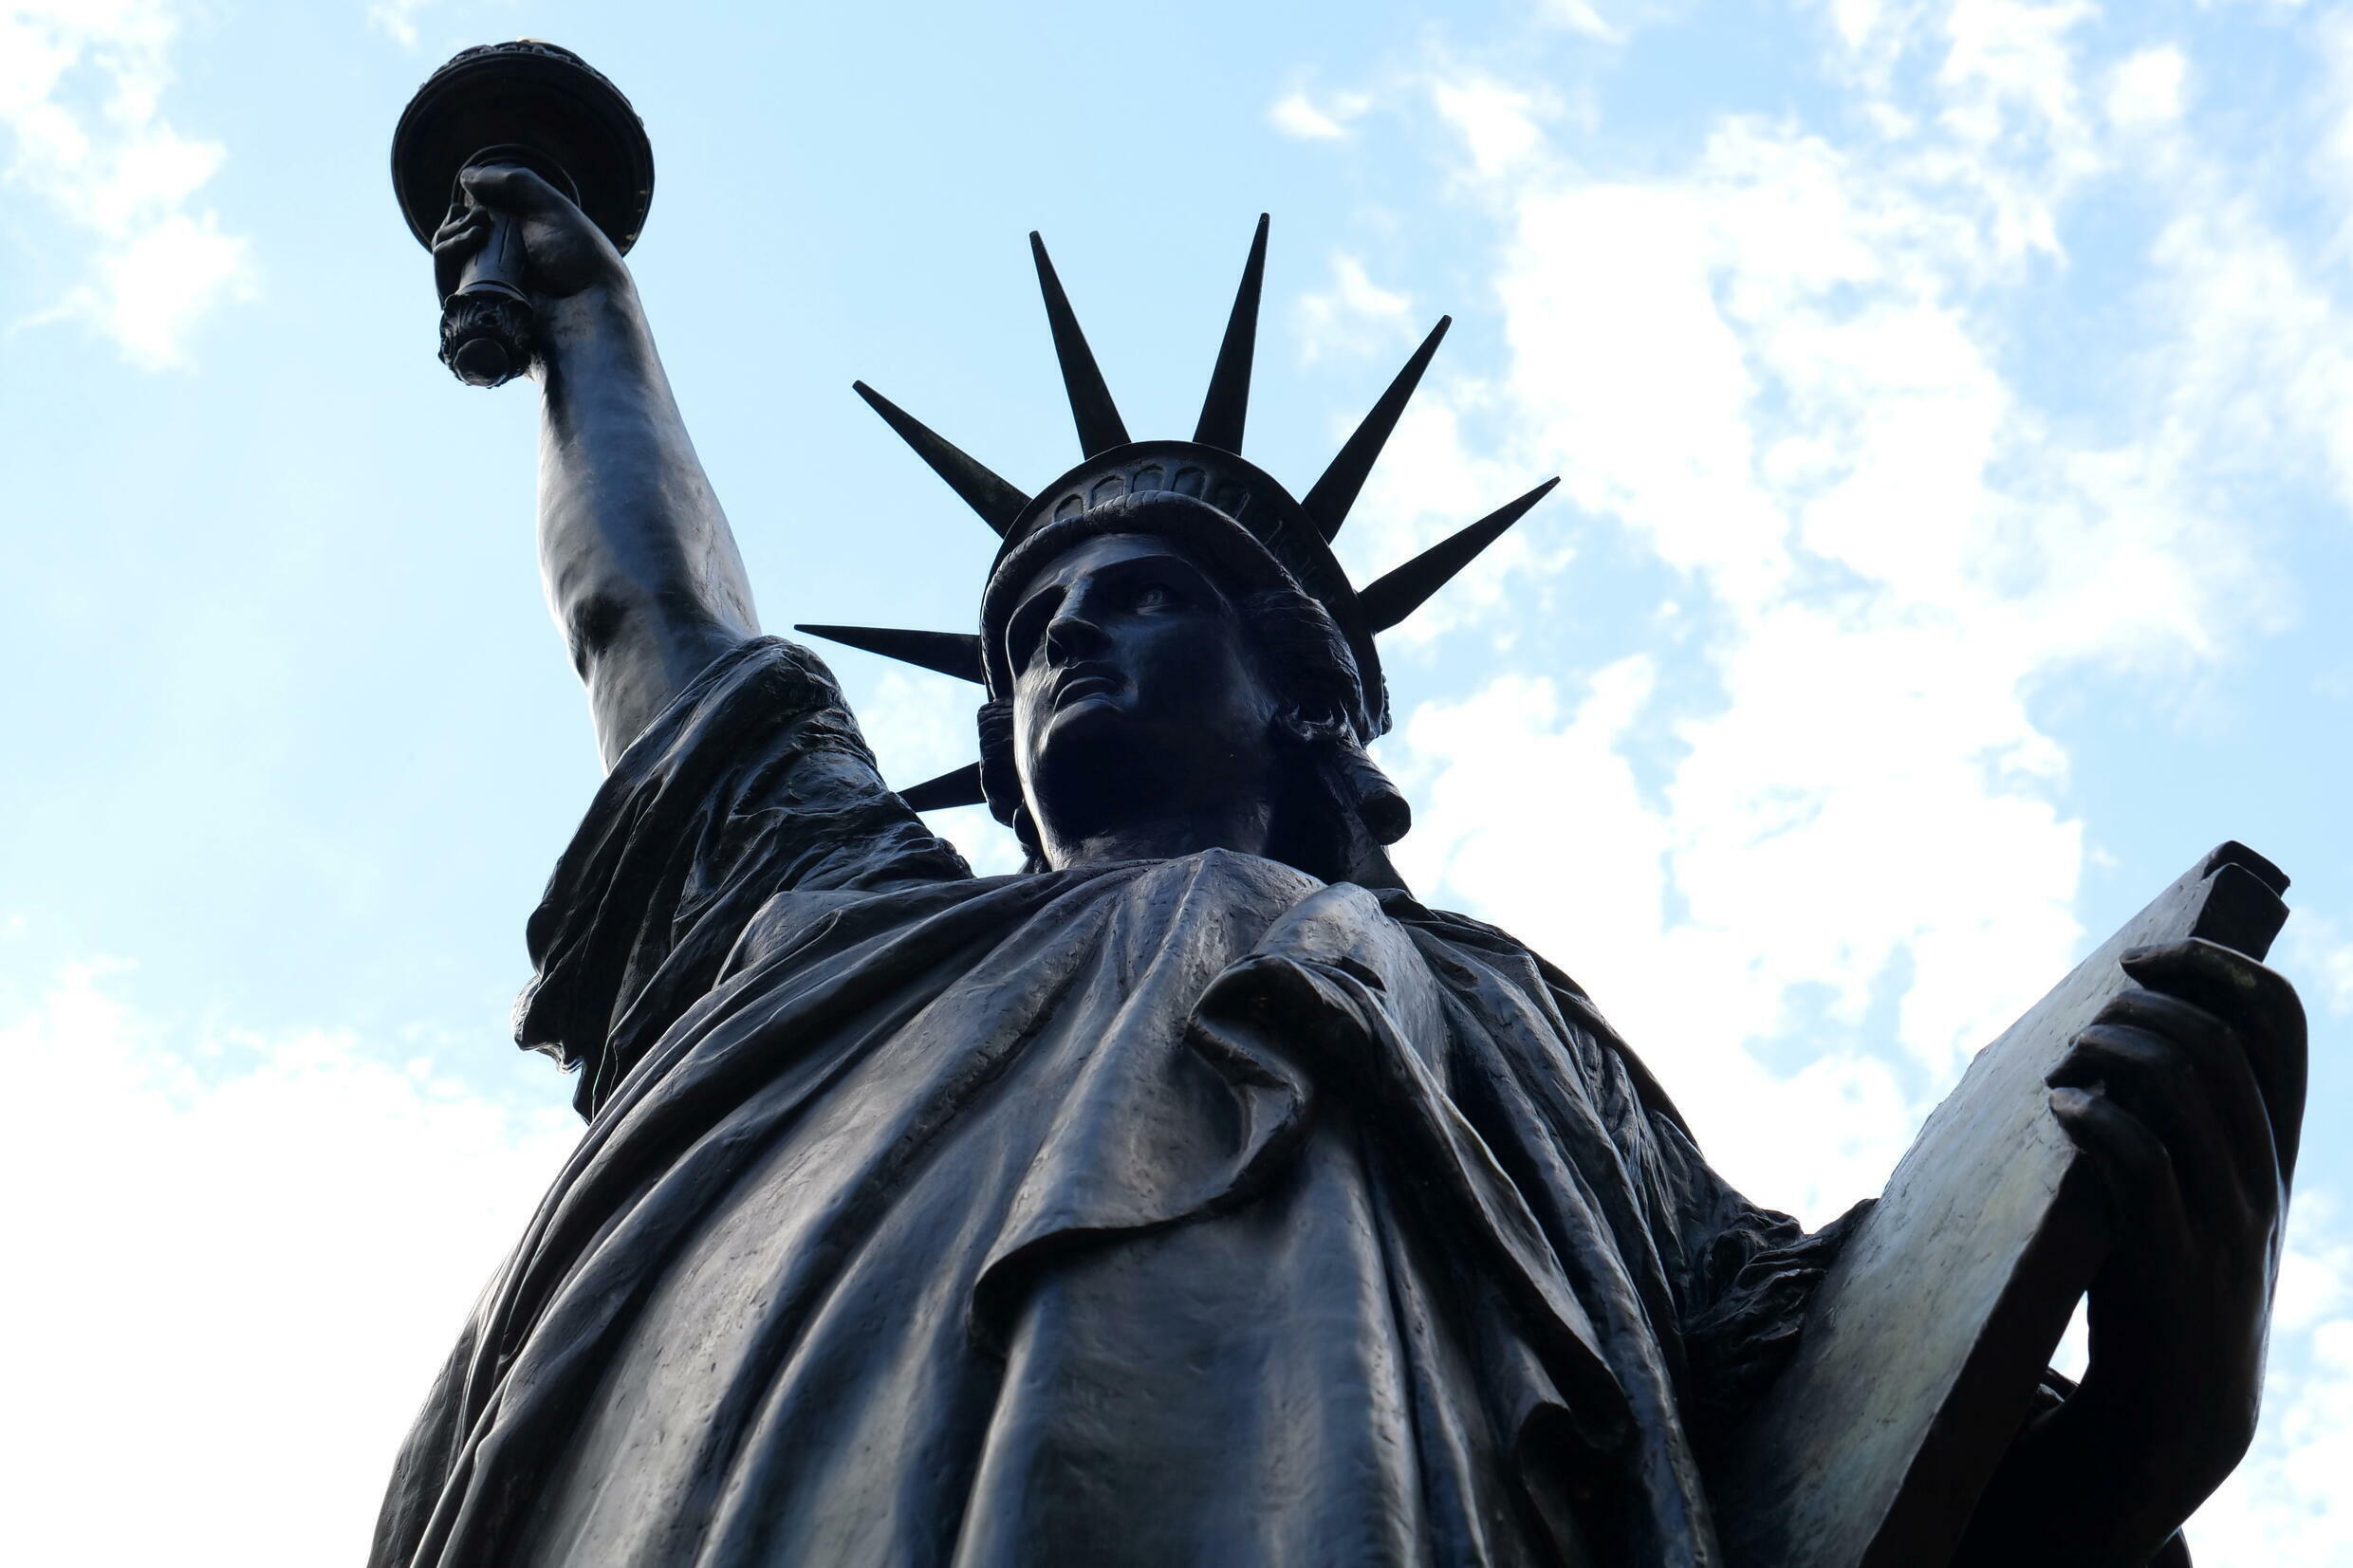 2021-06-07T142850Z_70426563_RC2HSN9SYII6_RTRMADP_3_FRANCE-USA-STATUE-OF-LIBERTY